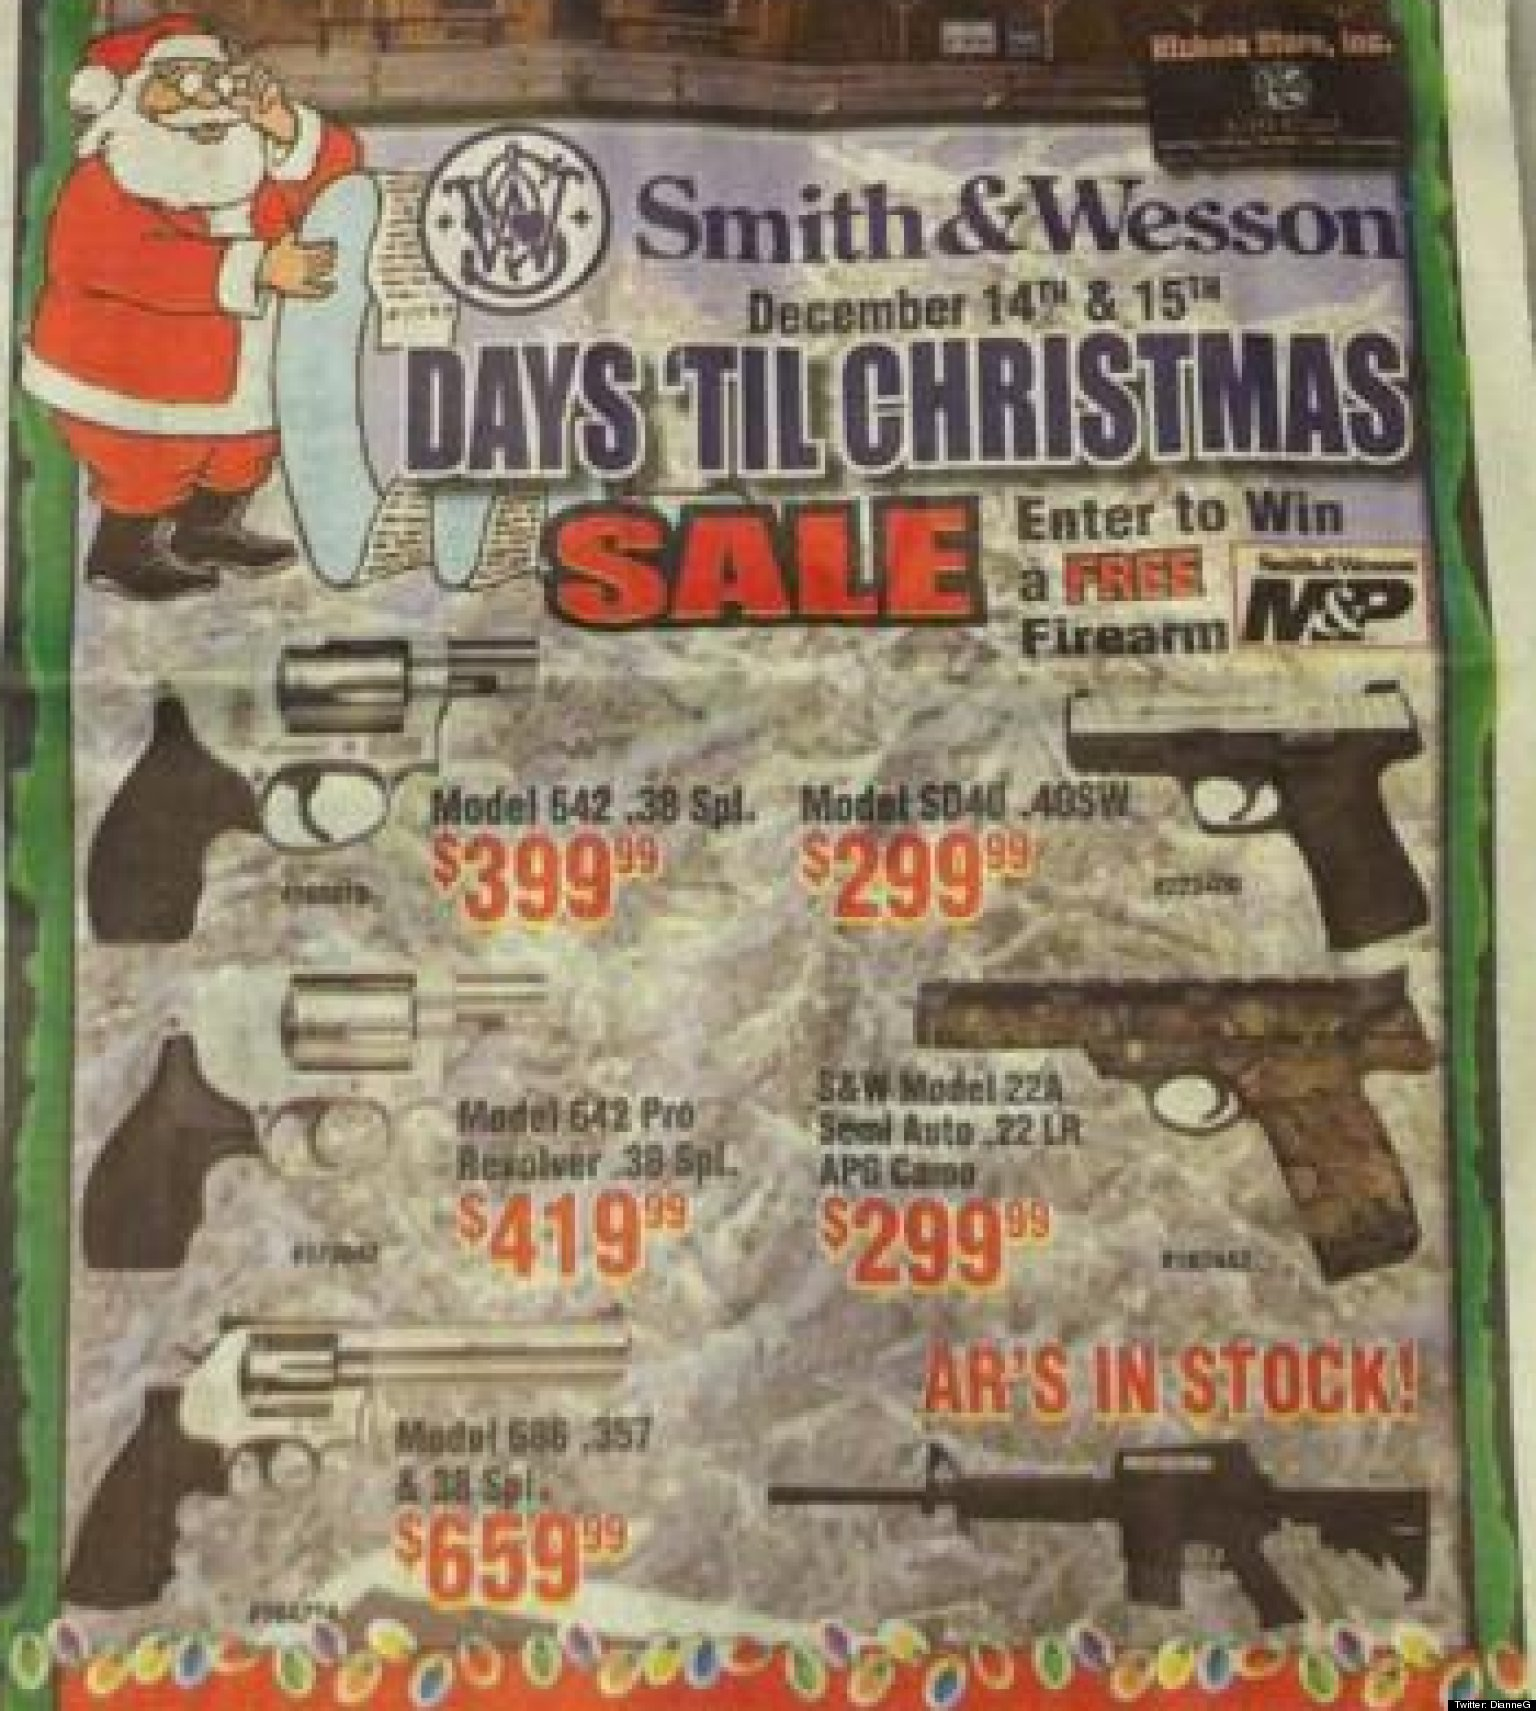 The Herald Newspaper Features Huge Gun Ad Next To Story Of